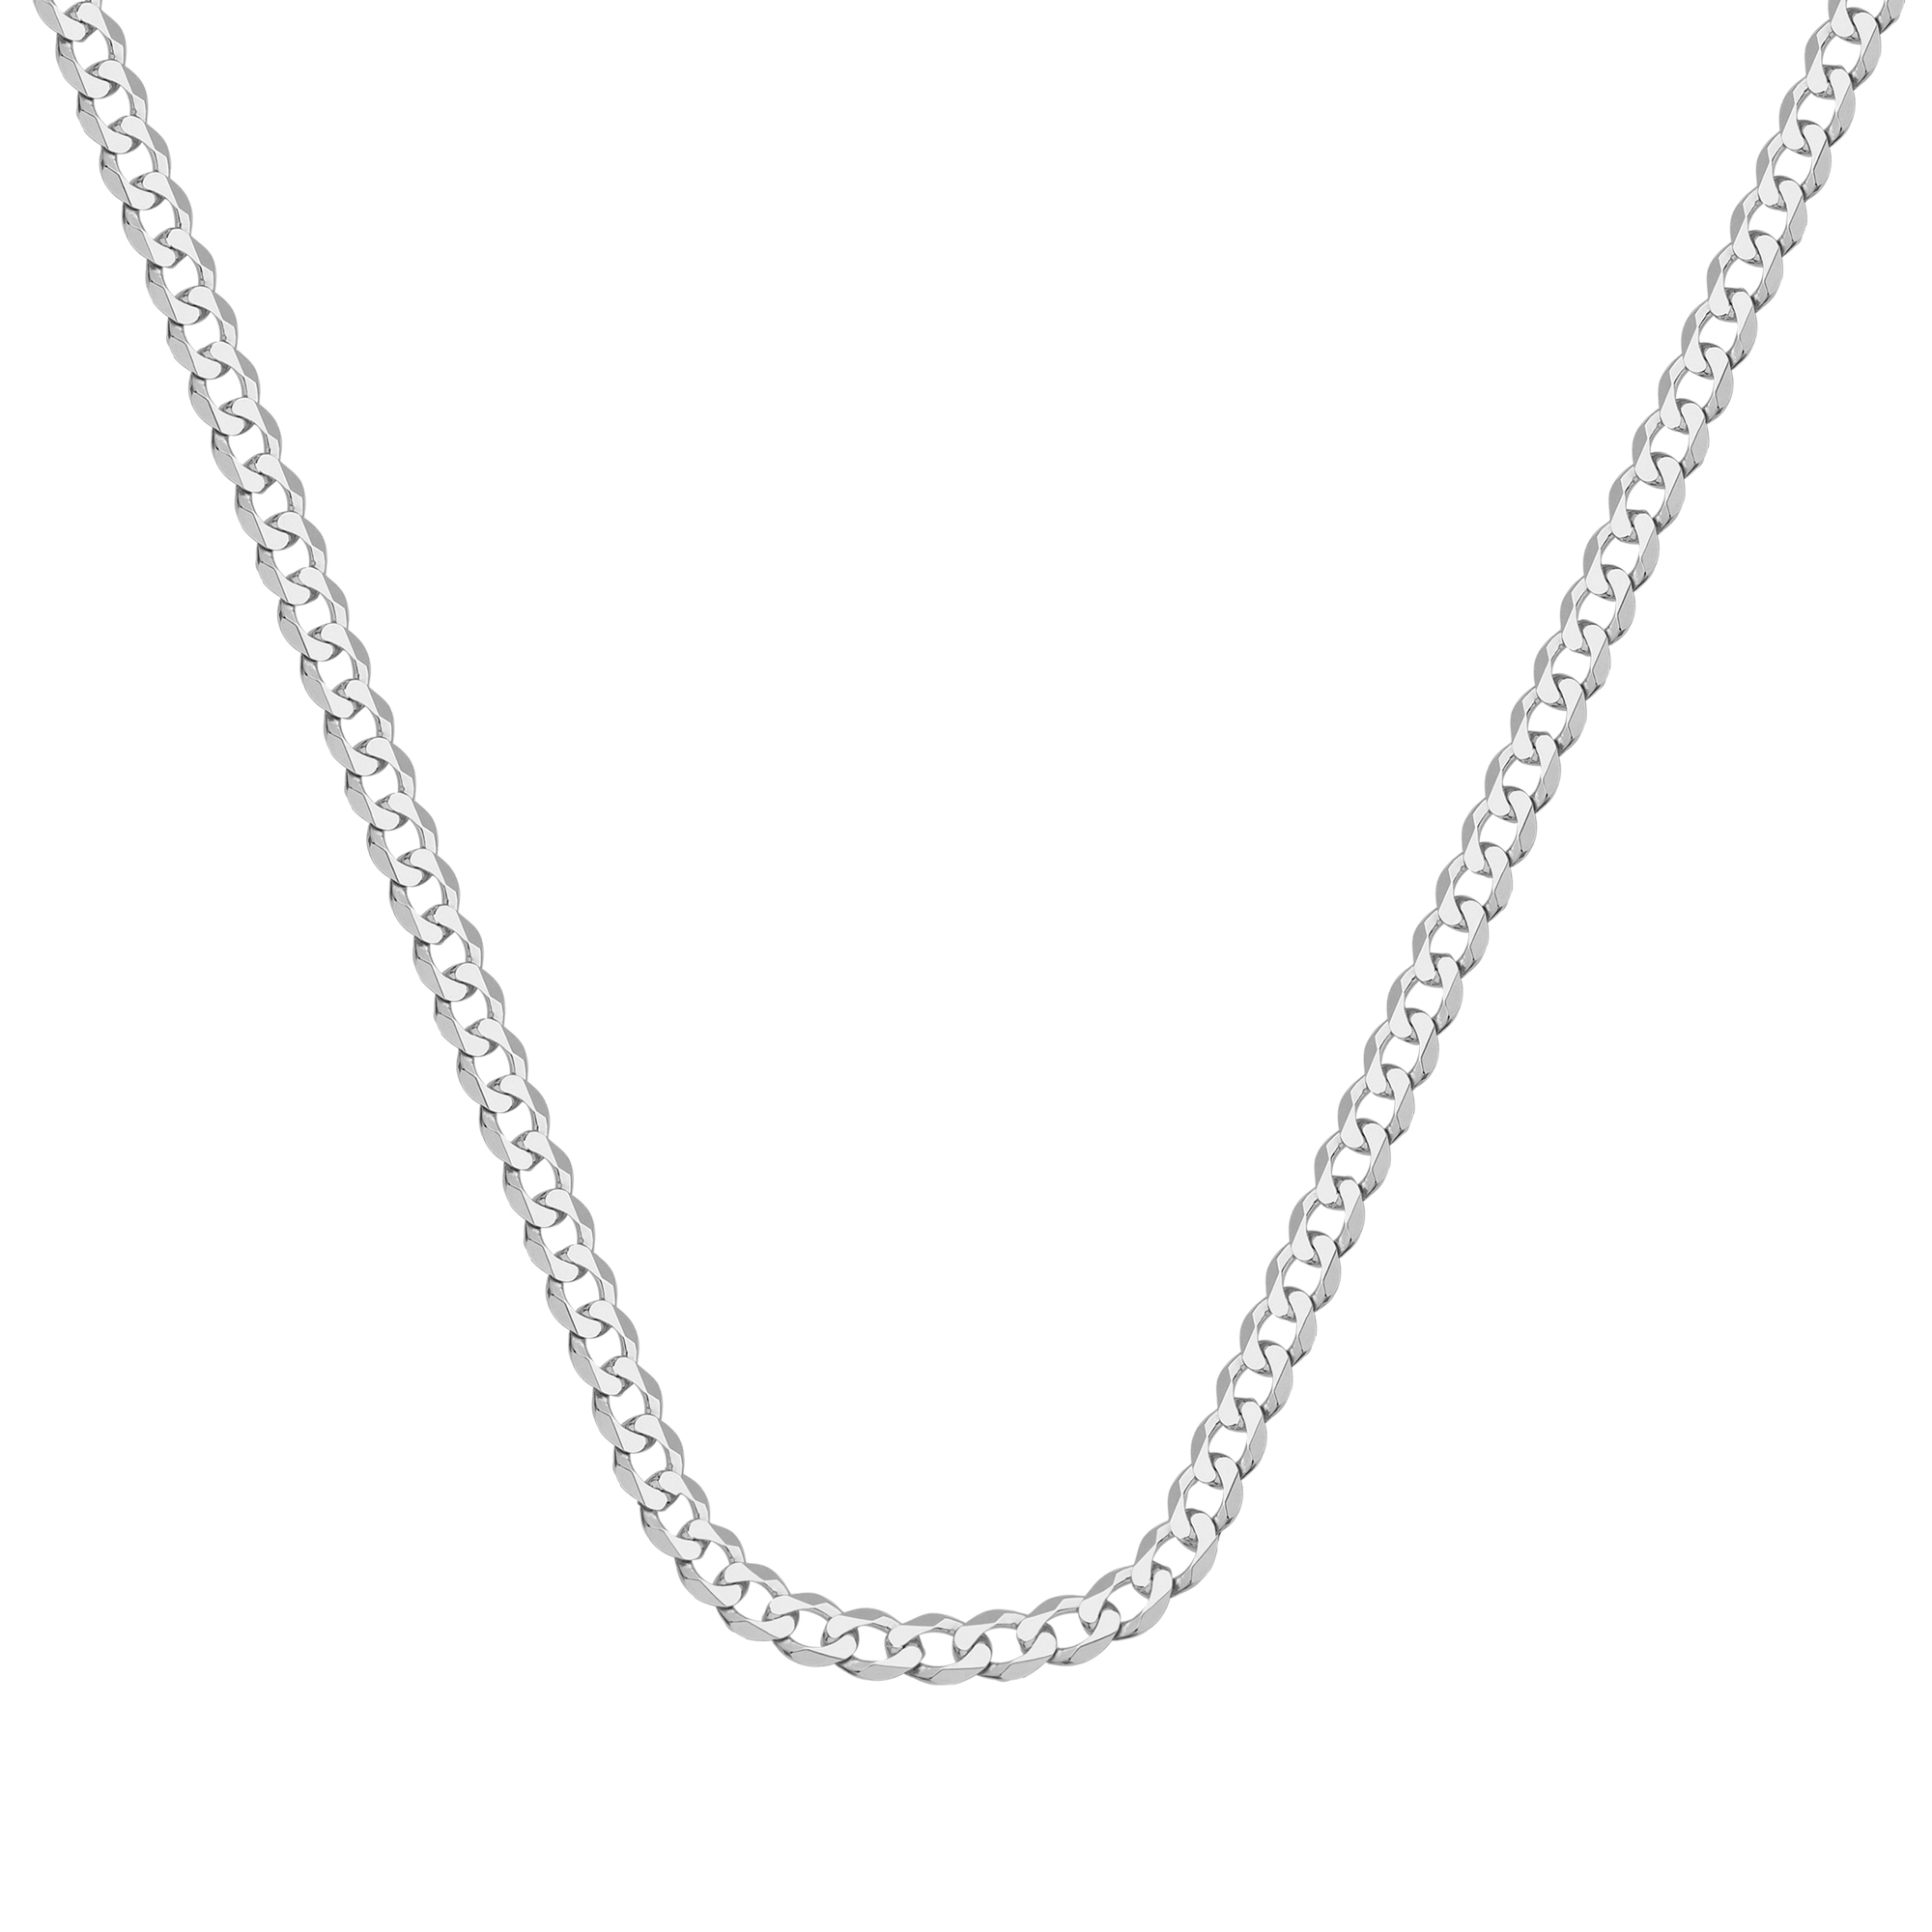 Curb Chain , 14Kt Gold  Curb Chain With Lobster Lock8